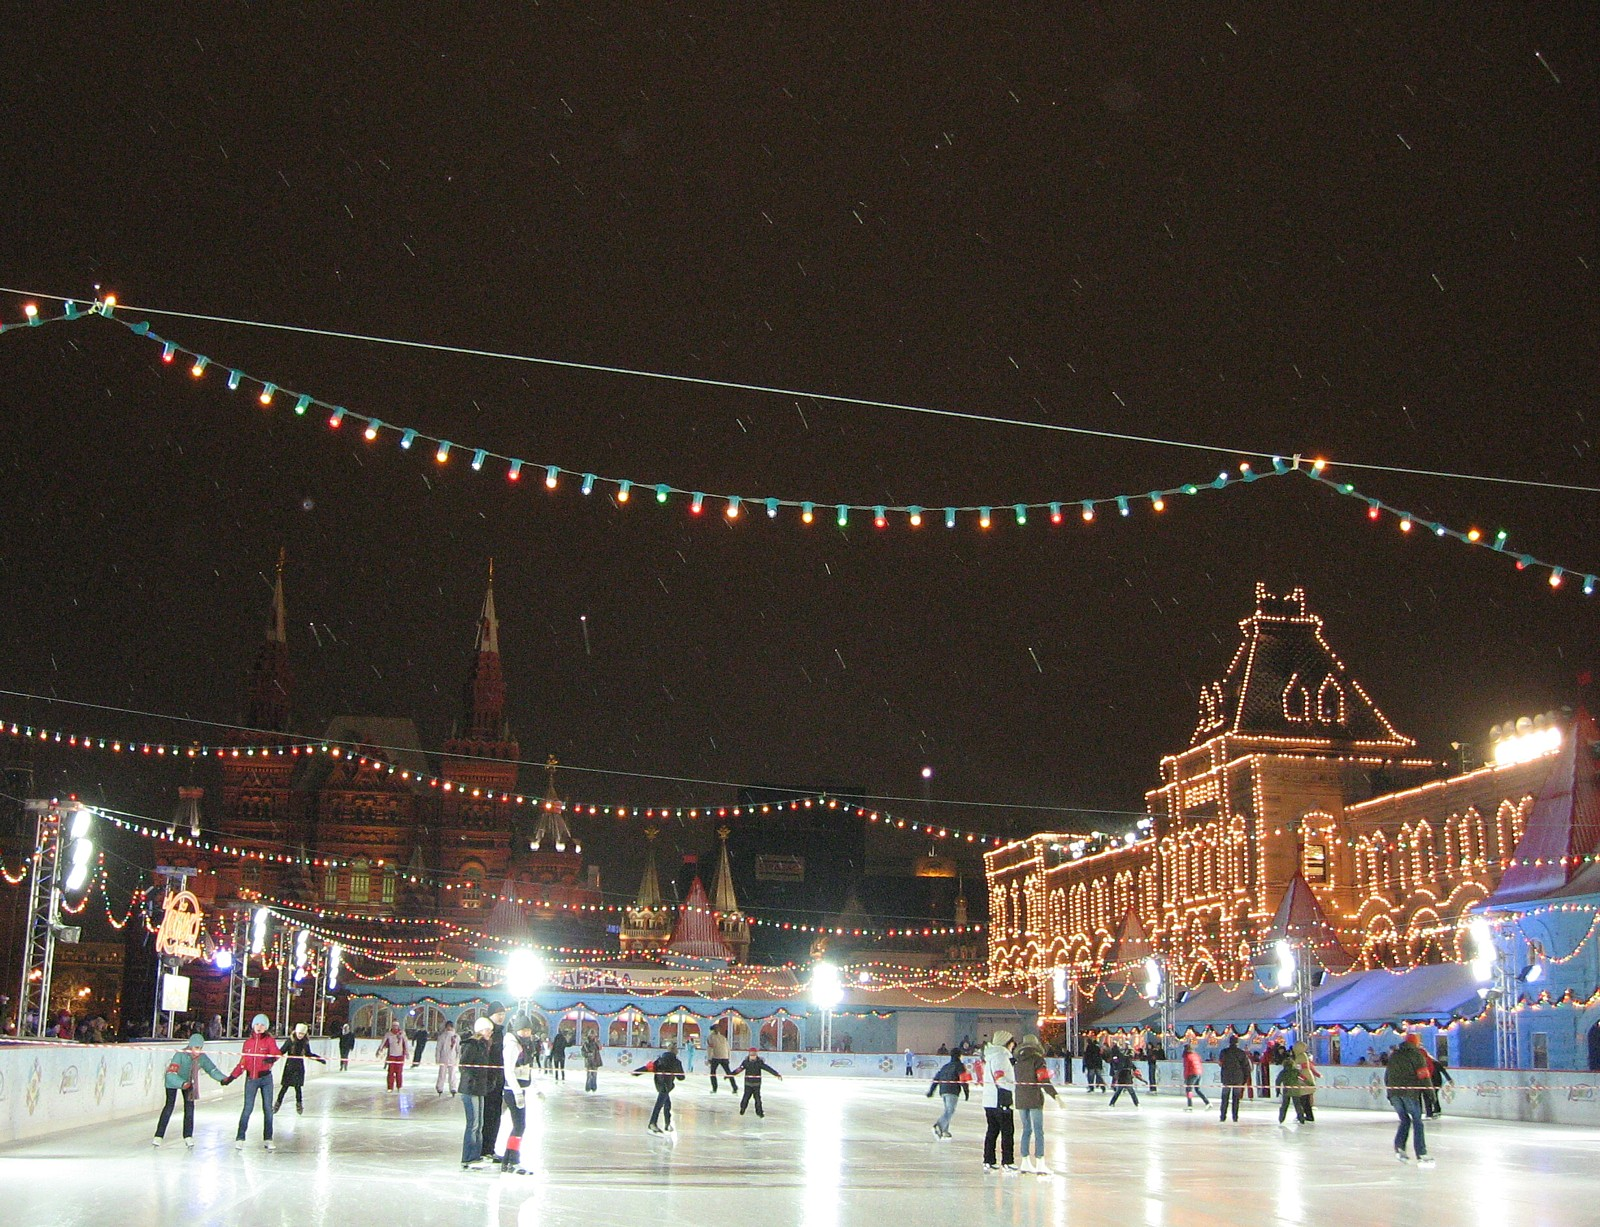 Red Square in the Winter